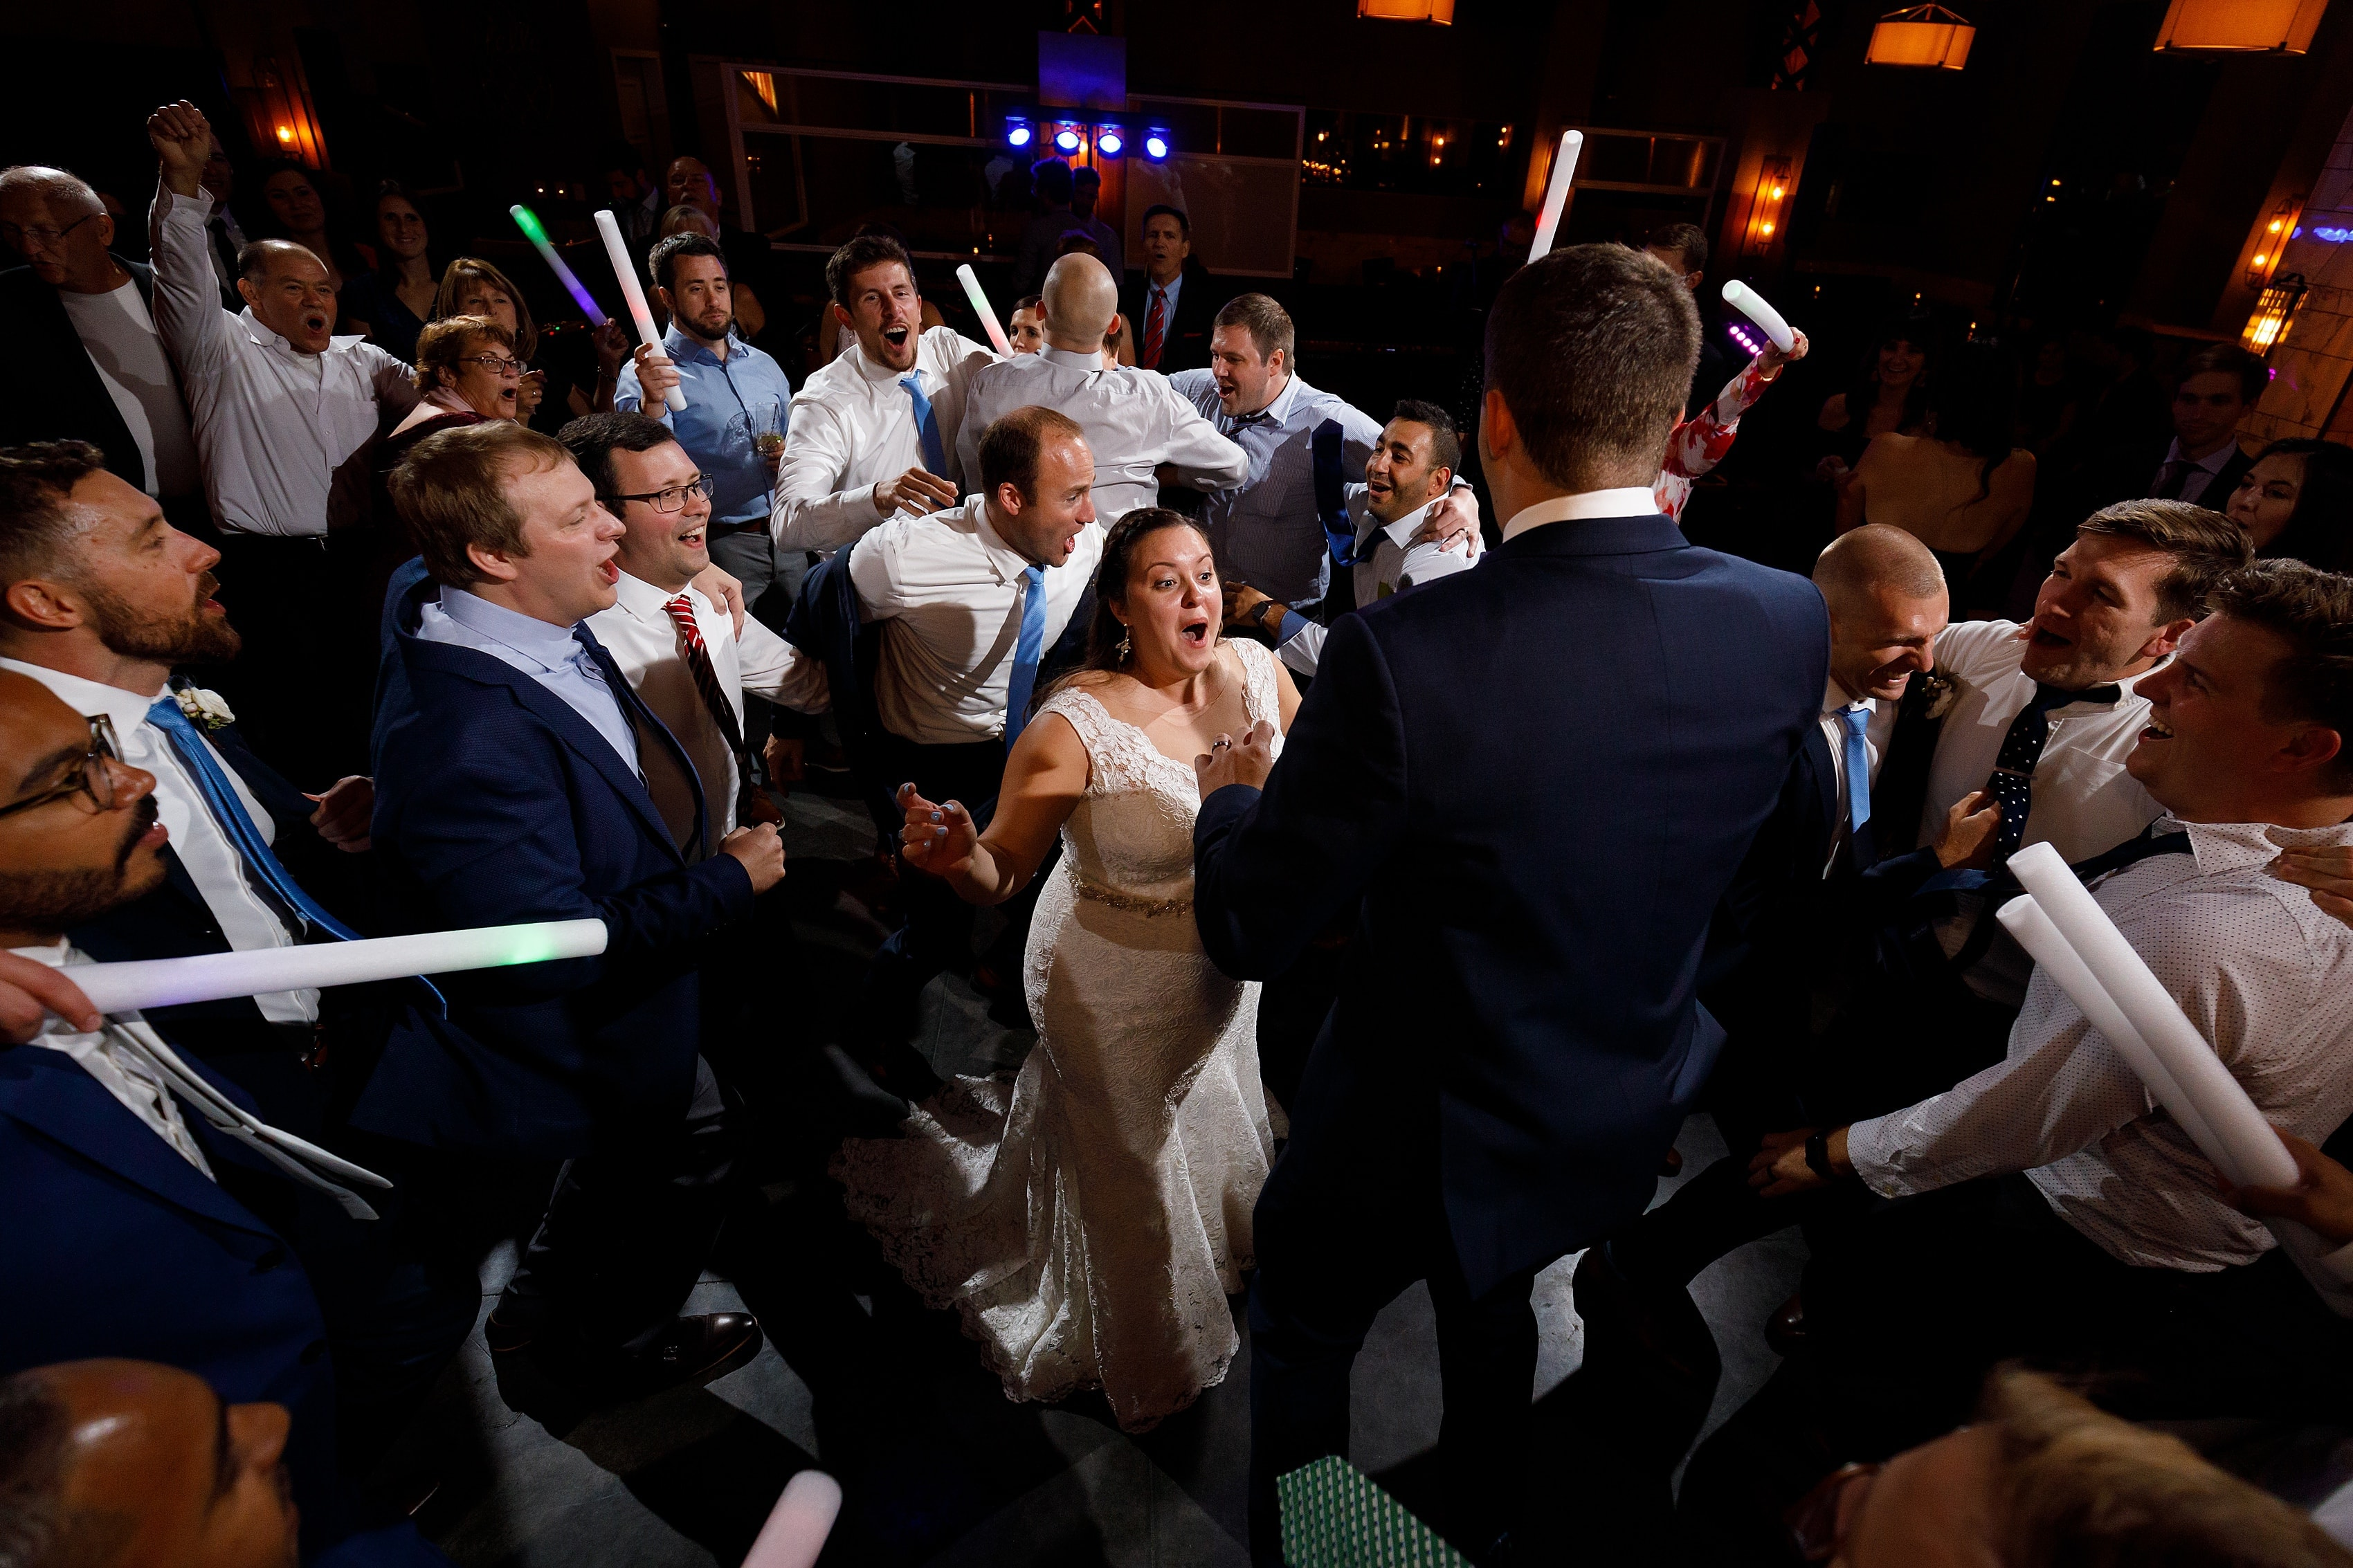 bride and groom dance with wedding guests during wedding reception at Boleo rooftop bar at Kimpton Gray Hotel in downtown Chicago